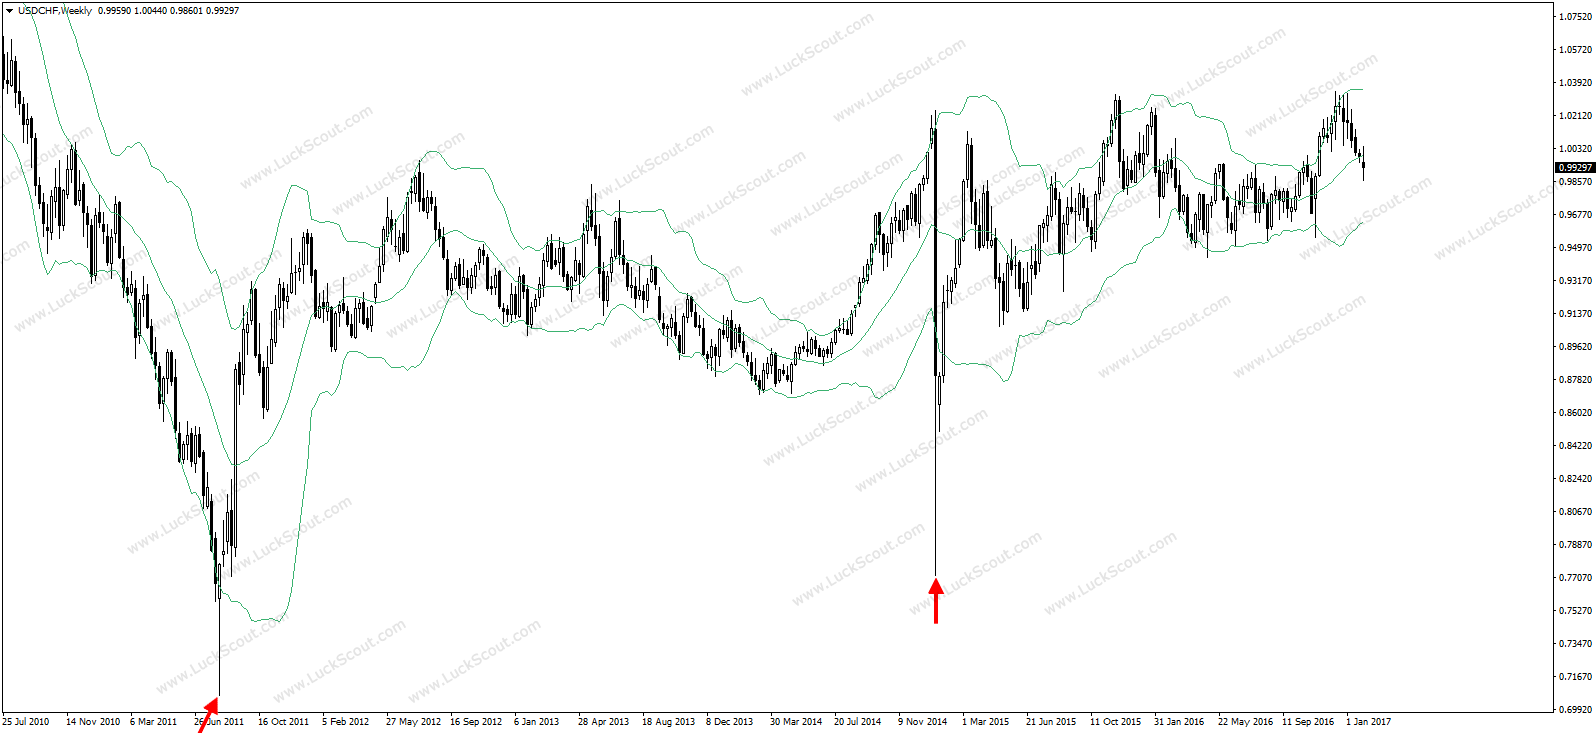 Forex Spike Trading on USD/CHF Weekly Chart